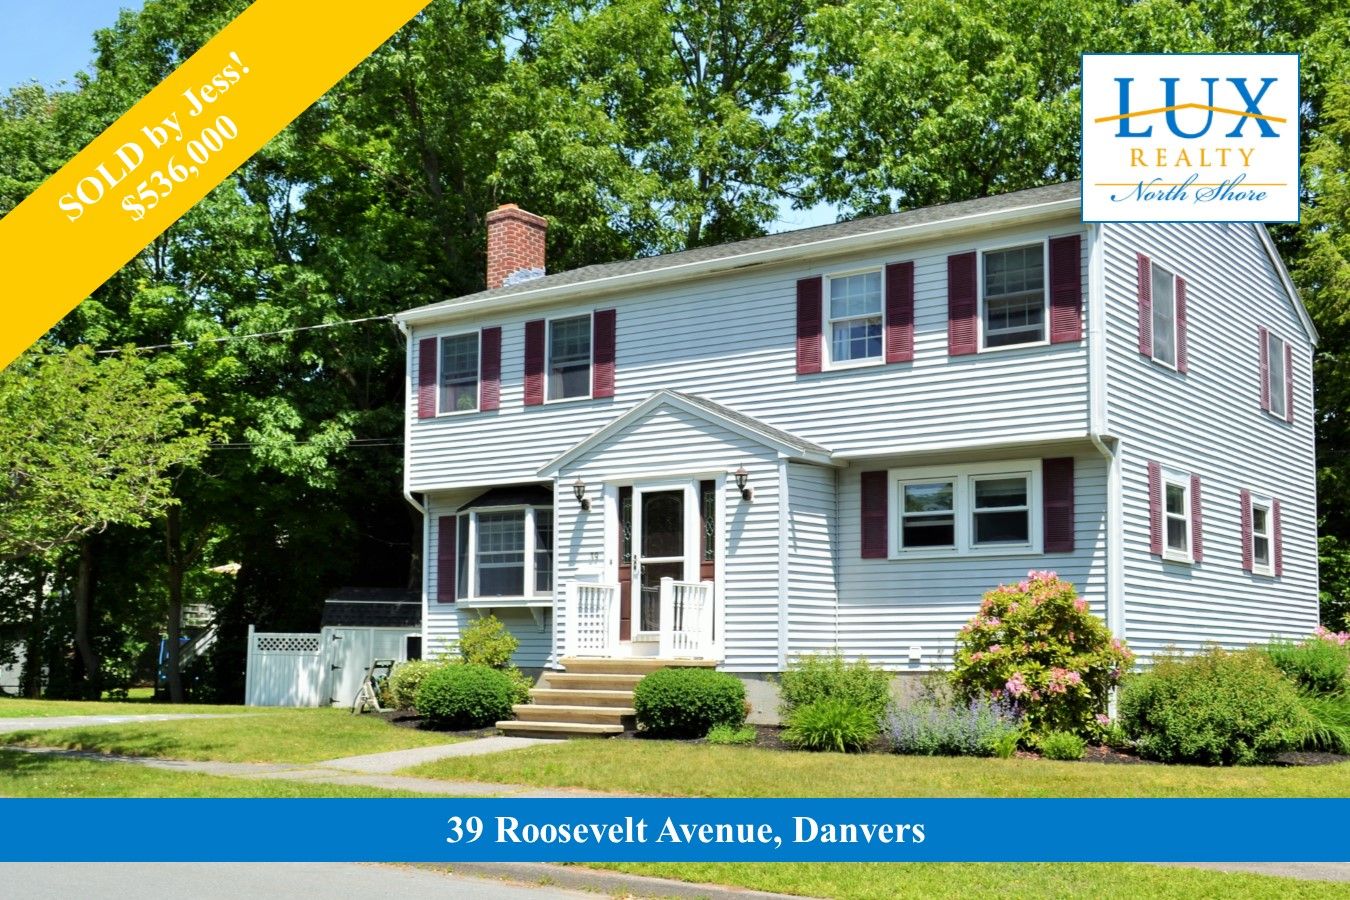 Danvers Homes for Sale